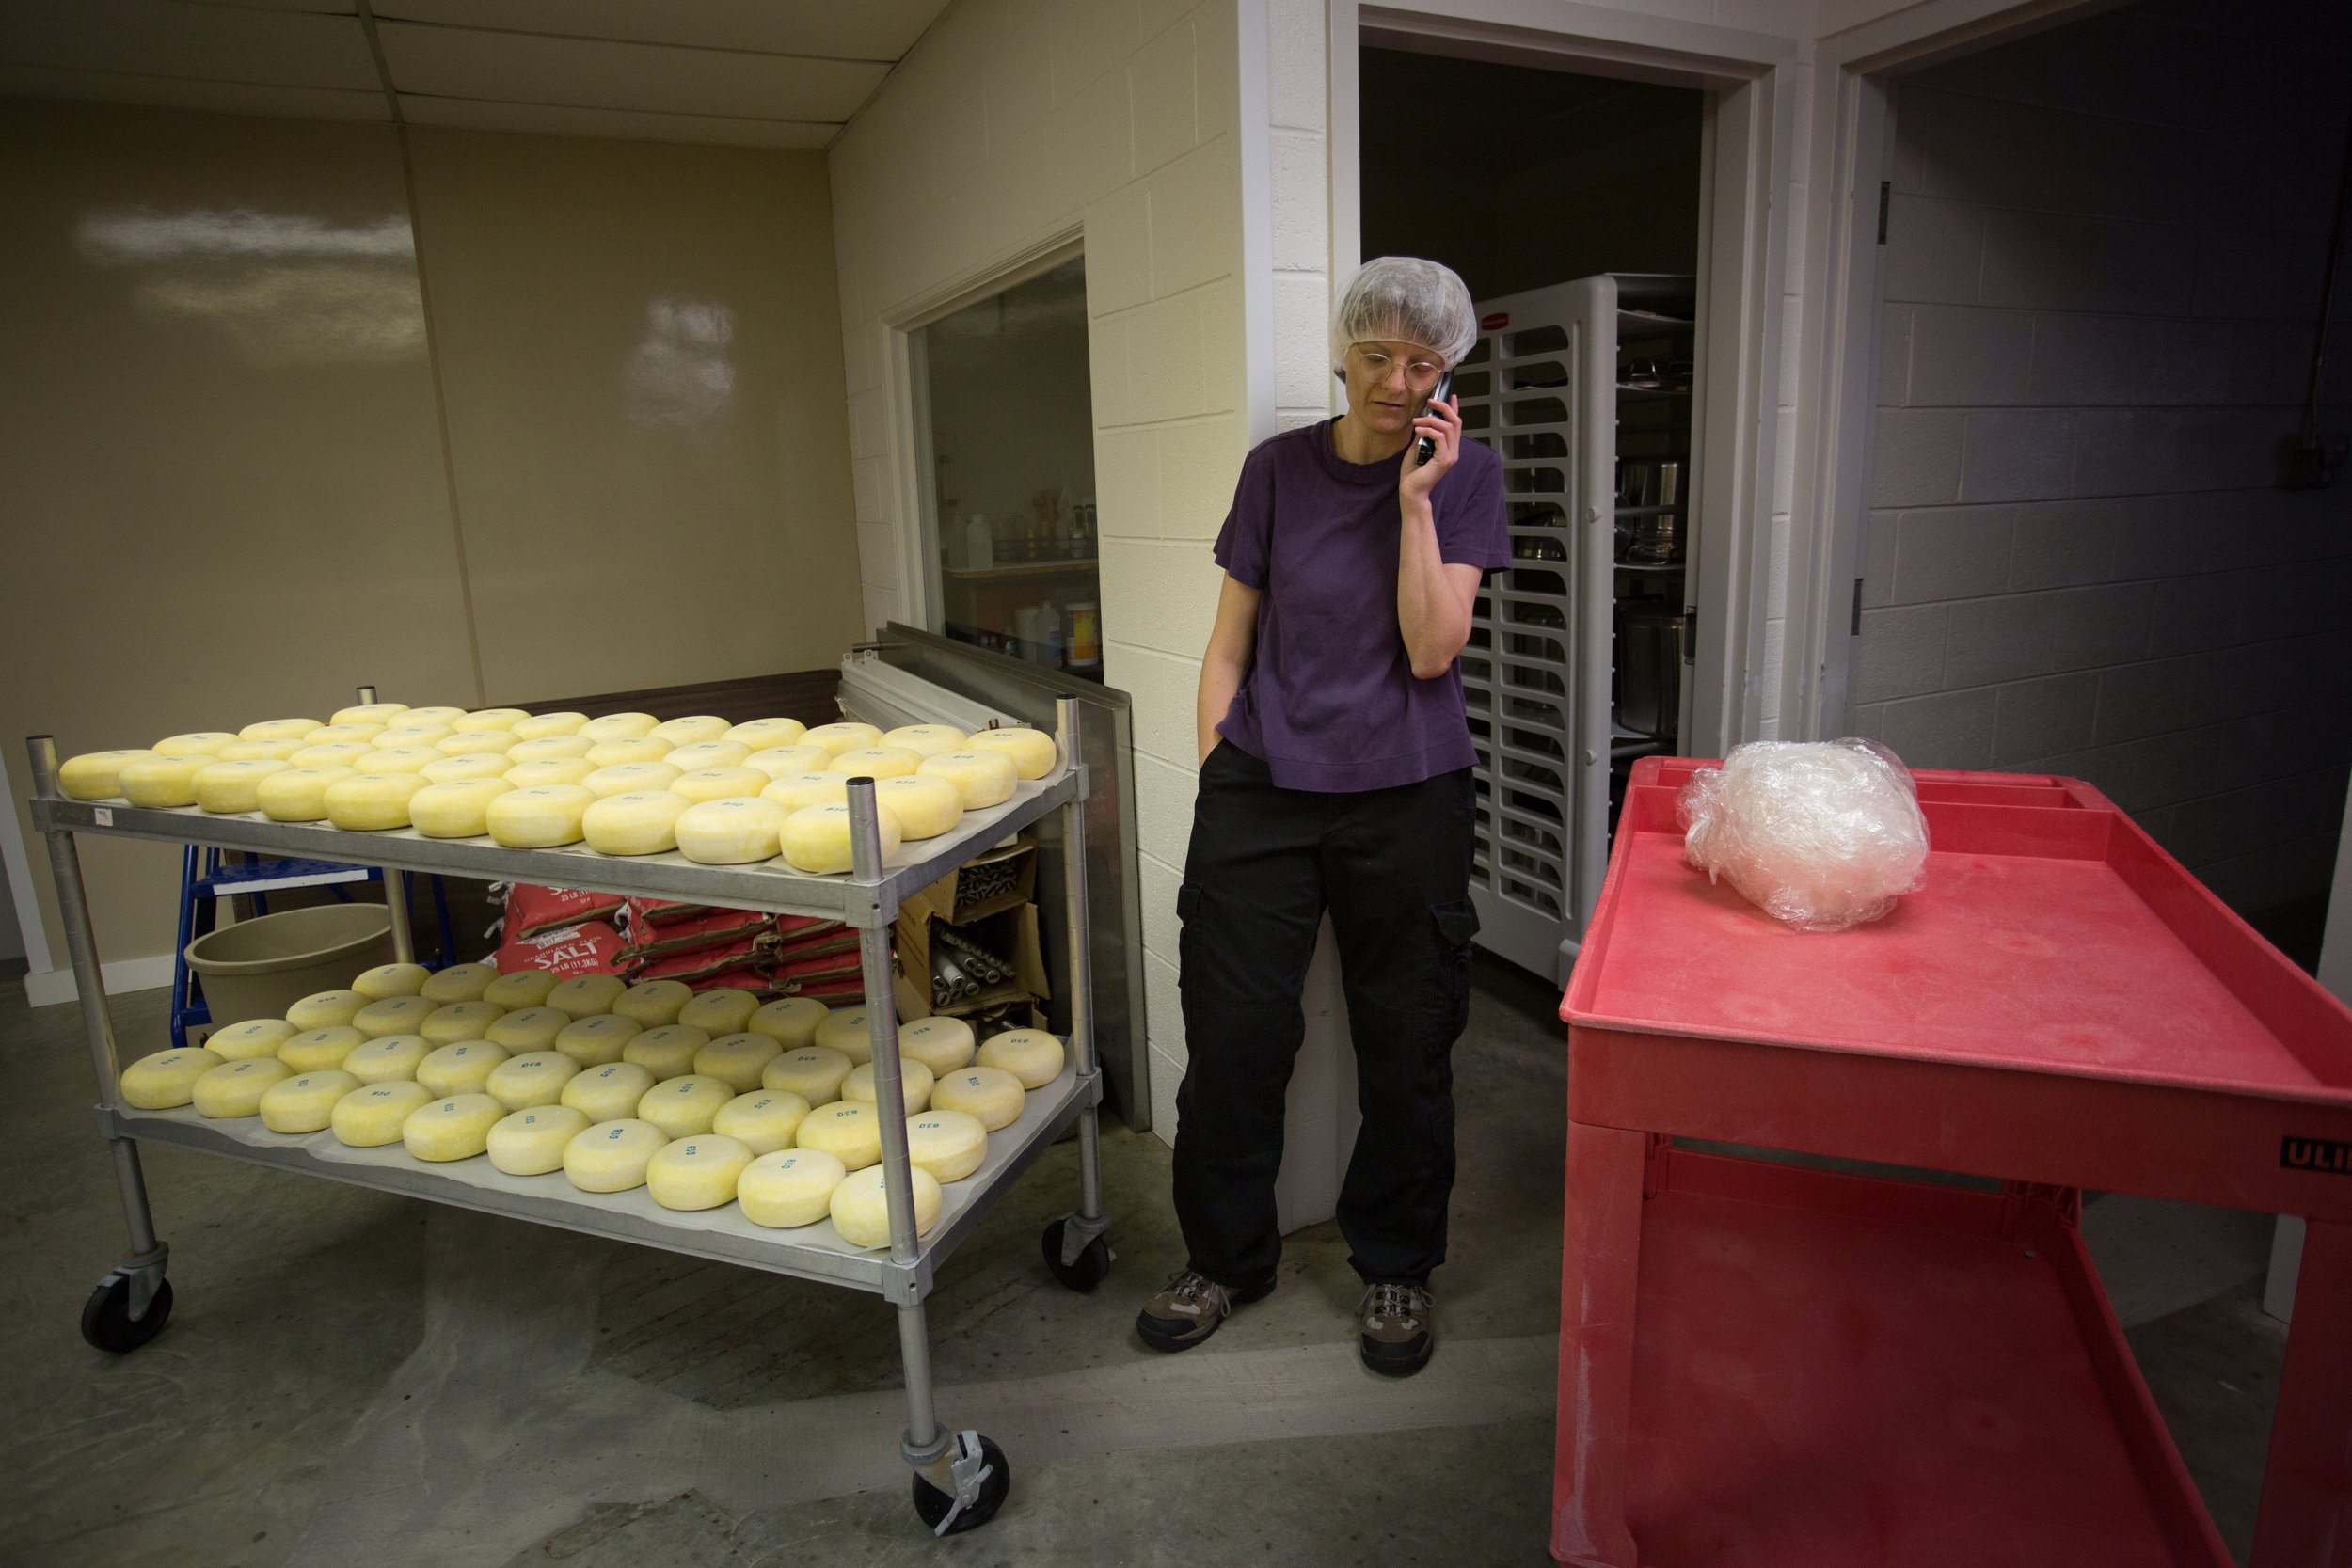 """Sister Eve Marie takes a break to call up to the church. Eve Marie prefers working in the cheese barn alone, """"I do not really need to this about what I am doing, it is easy, peaceful work,"""" Eve Marie said."""